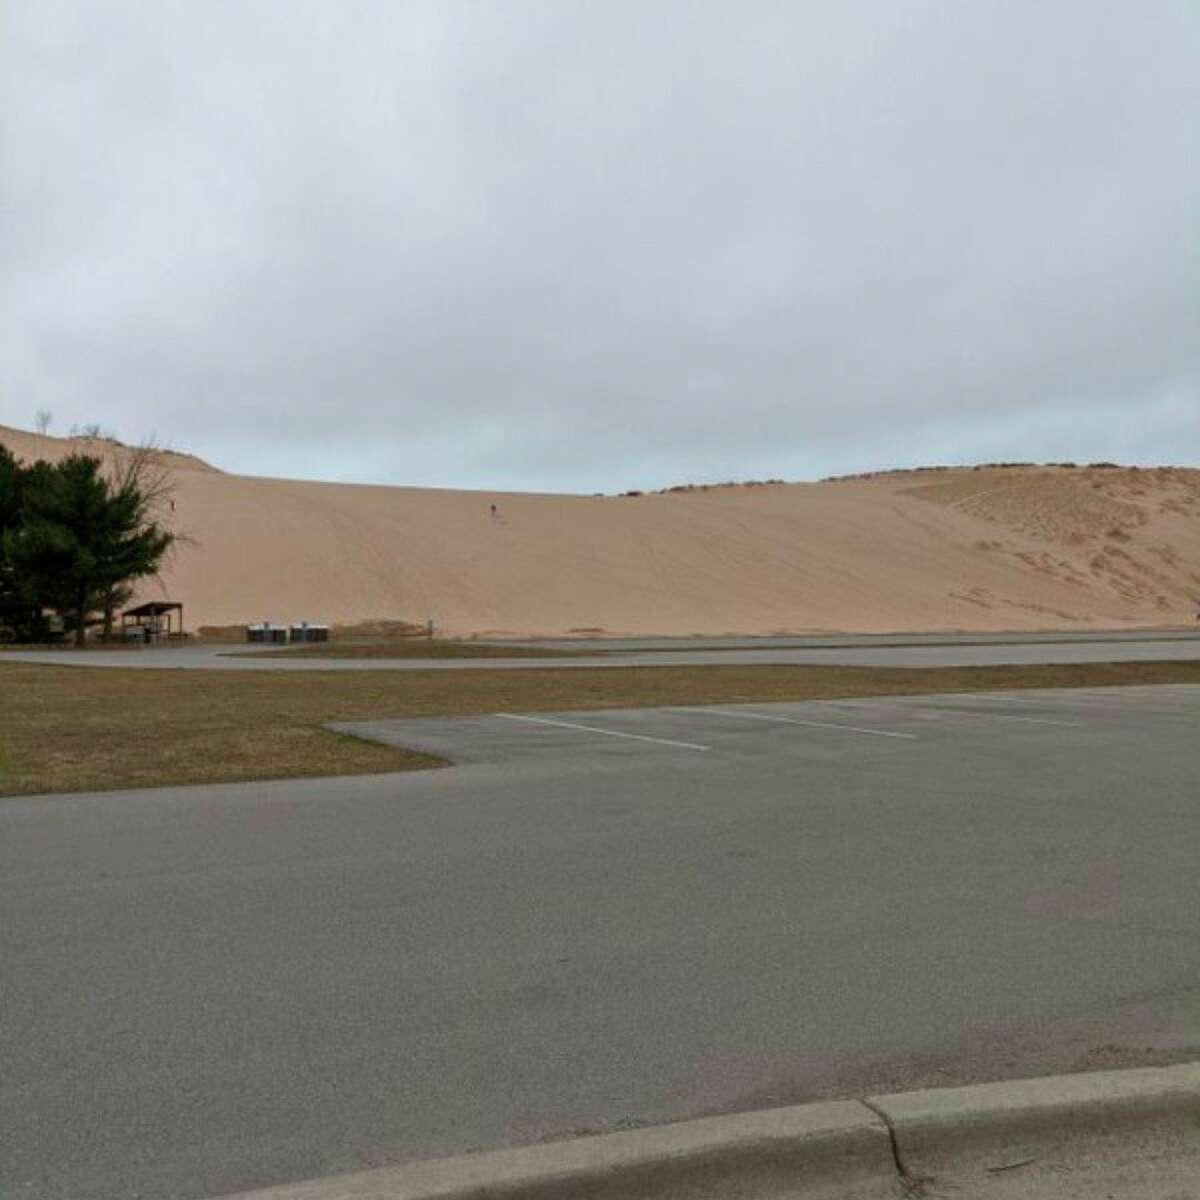 The Sleeping Bear Dunes National Lakeshore is preparing for a busy season after people took to the wilderness to avoid COVID-19 in record numbers during 2020. (Courtesy Photo/National Lakeshore)